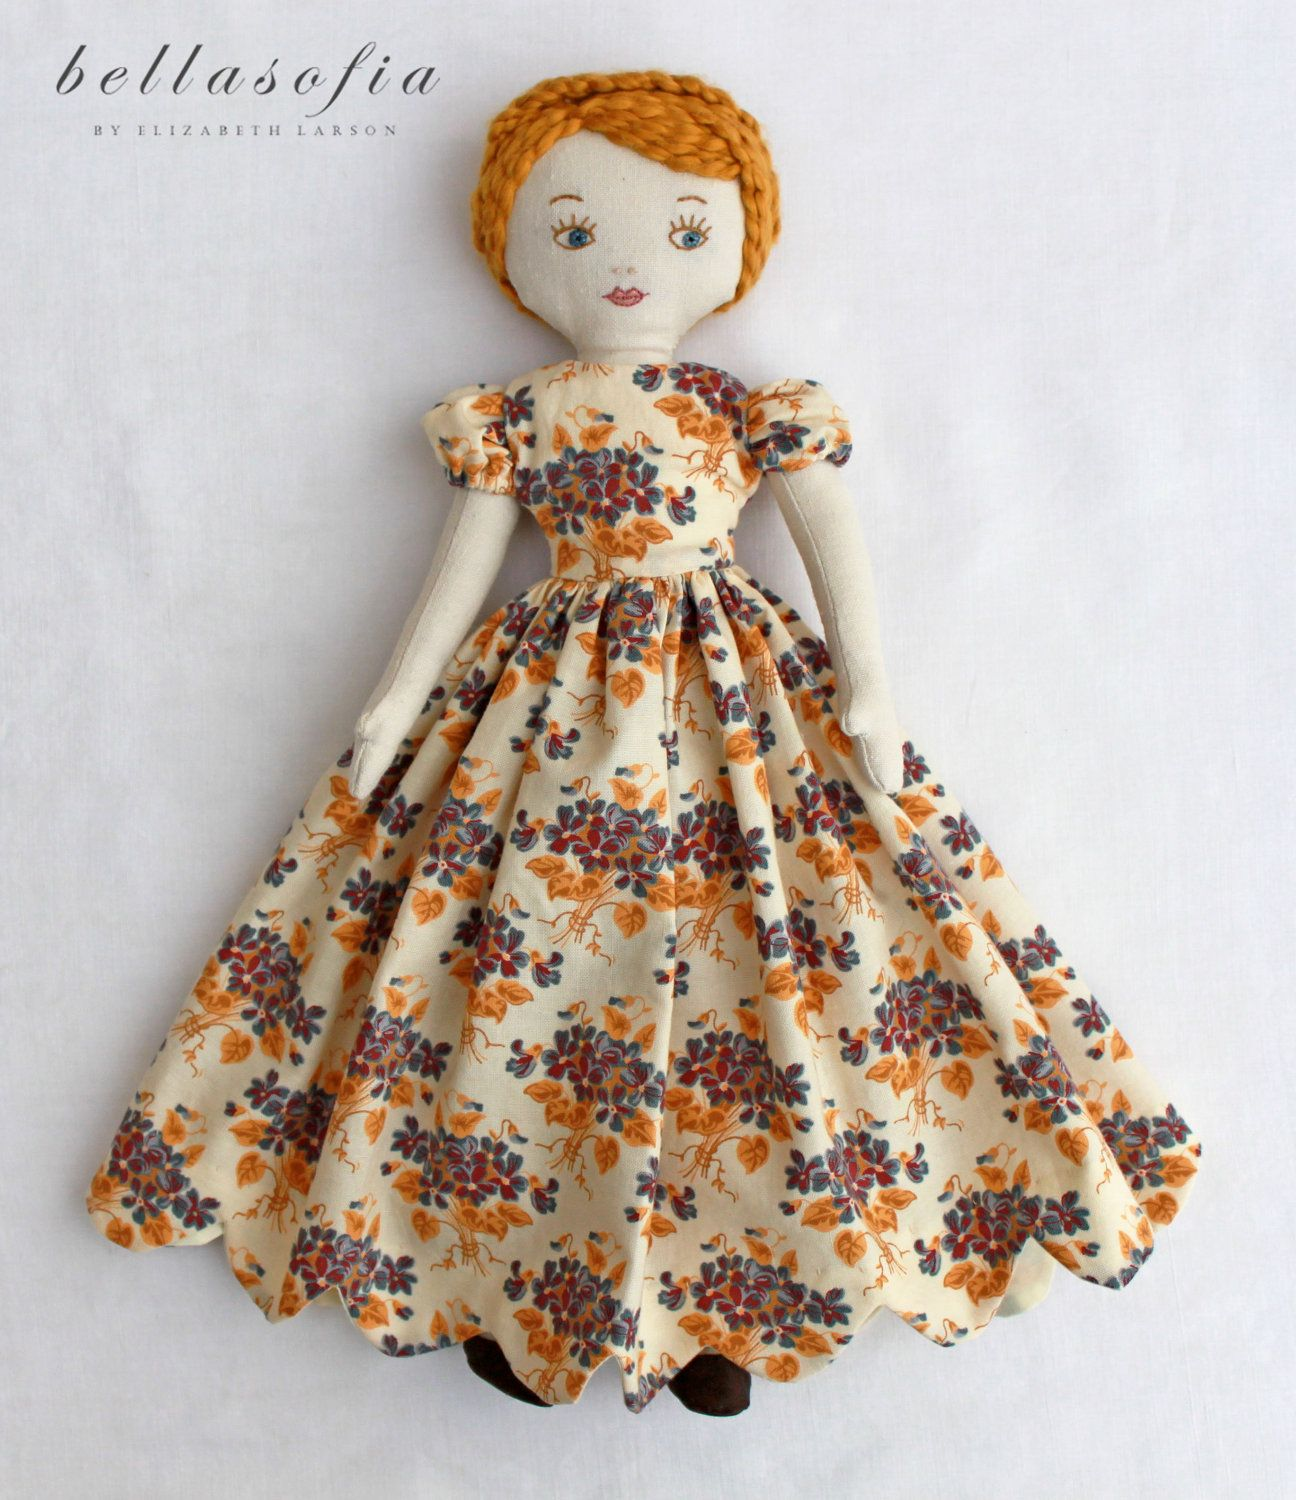 "a bellasofia beauty ""Violet"" heirloom quality vintage inspired rag doll - Absolutely stunning!"